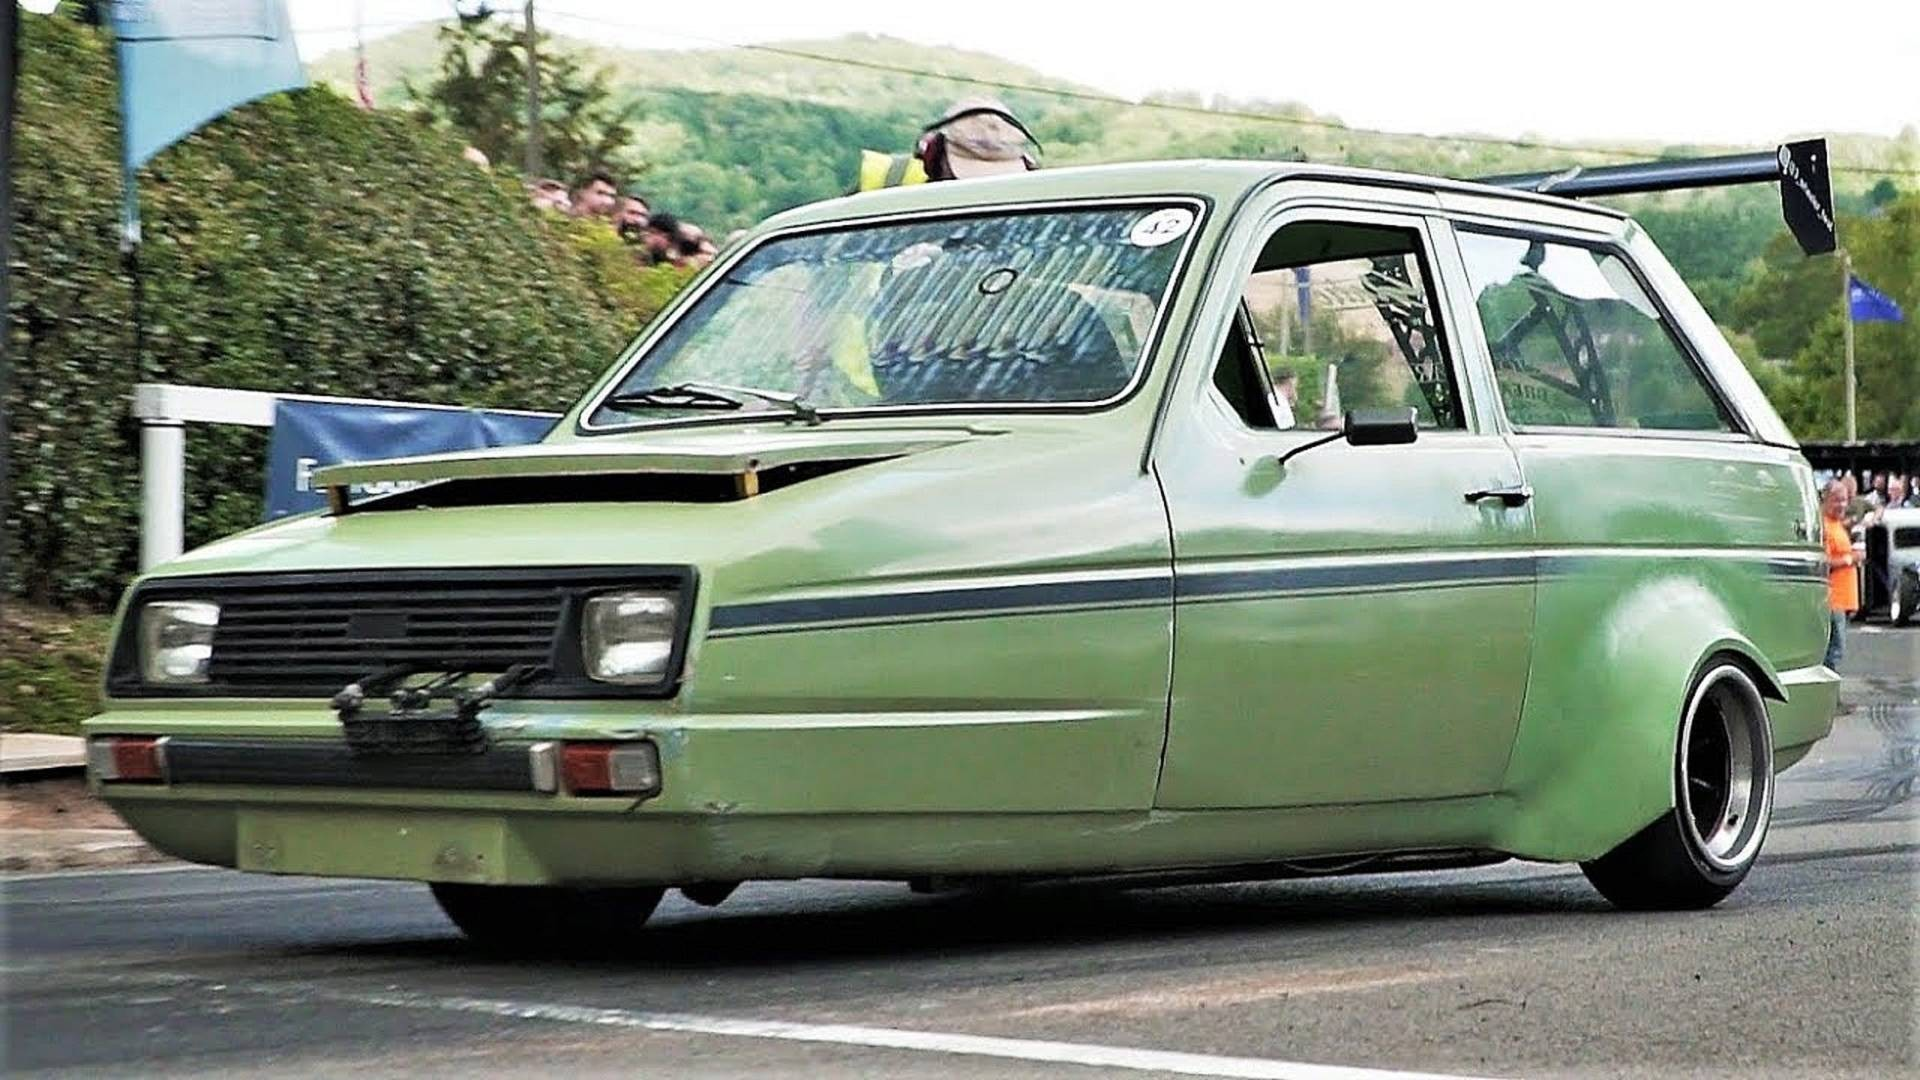 reliant-rialto-with-motorcycle-engine